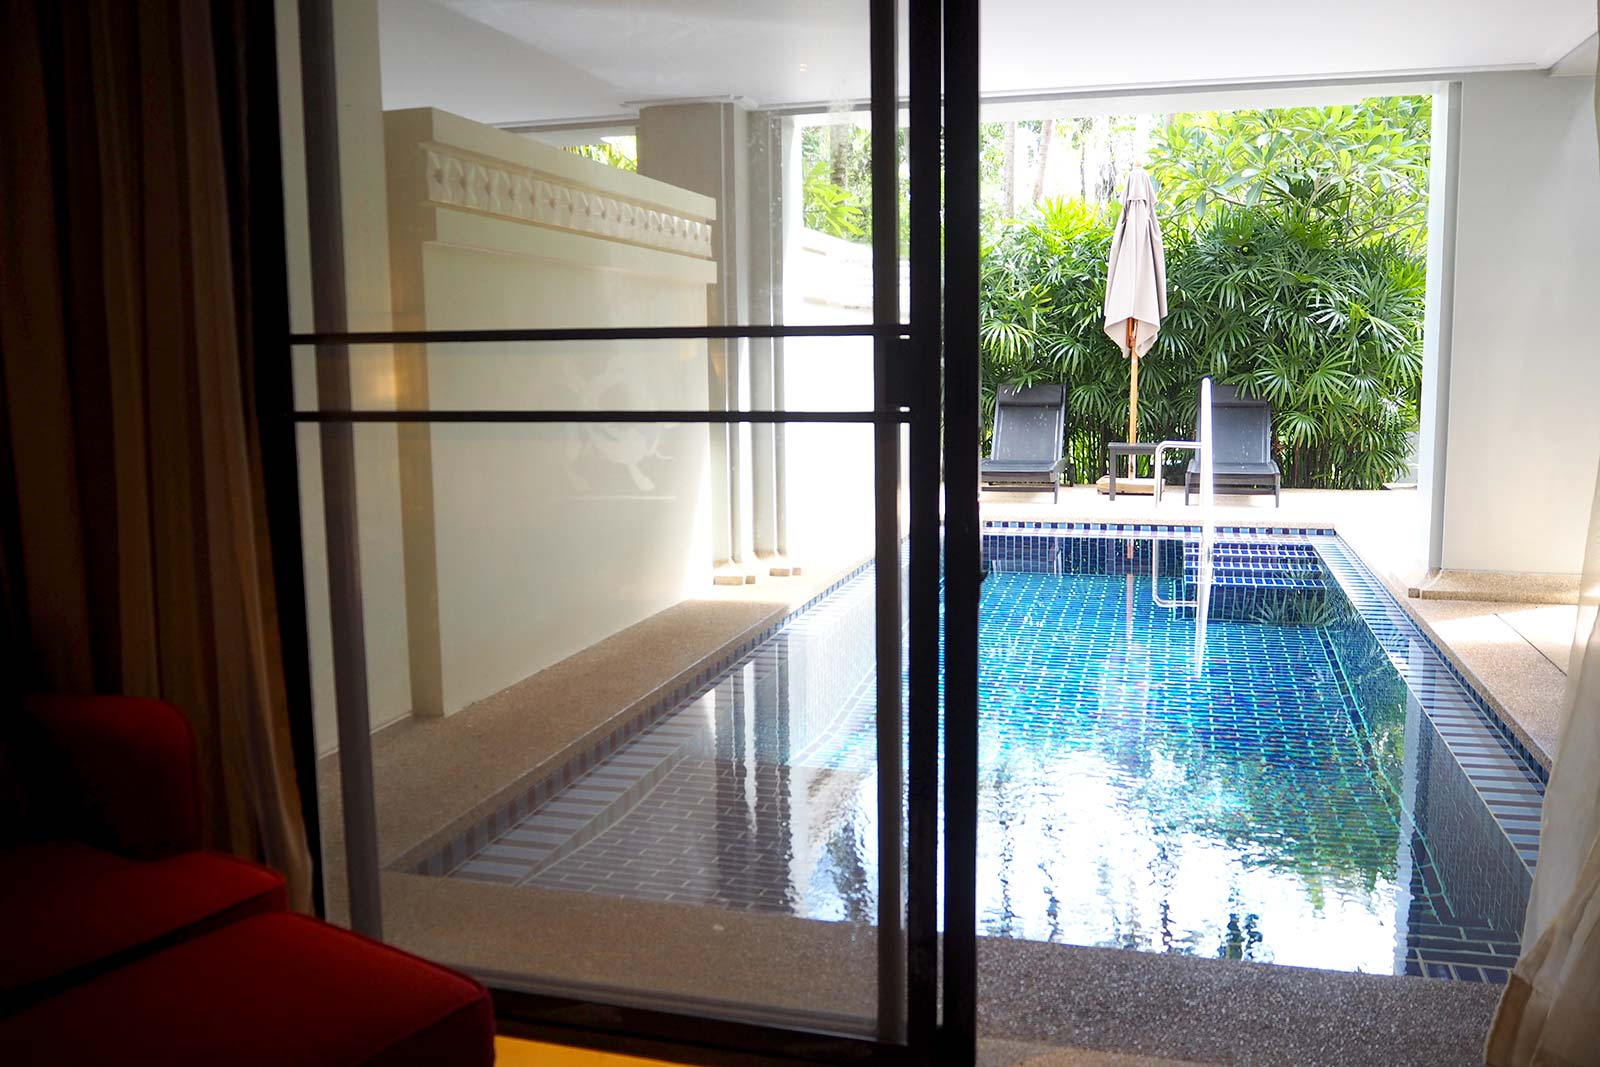 Review of Marriott's Vacation Club, Mai Khao Beach, Phuket • The Petite Wanderess